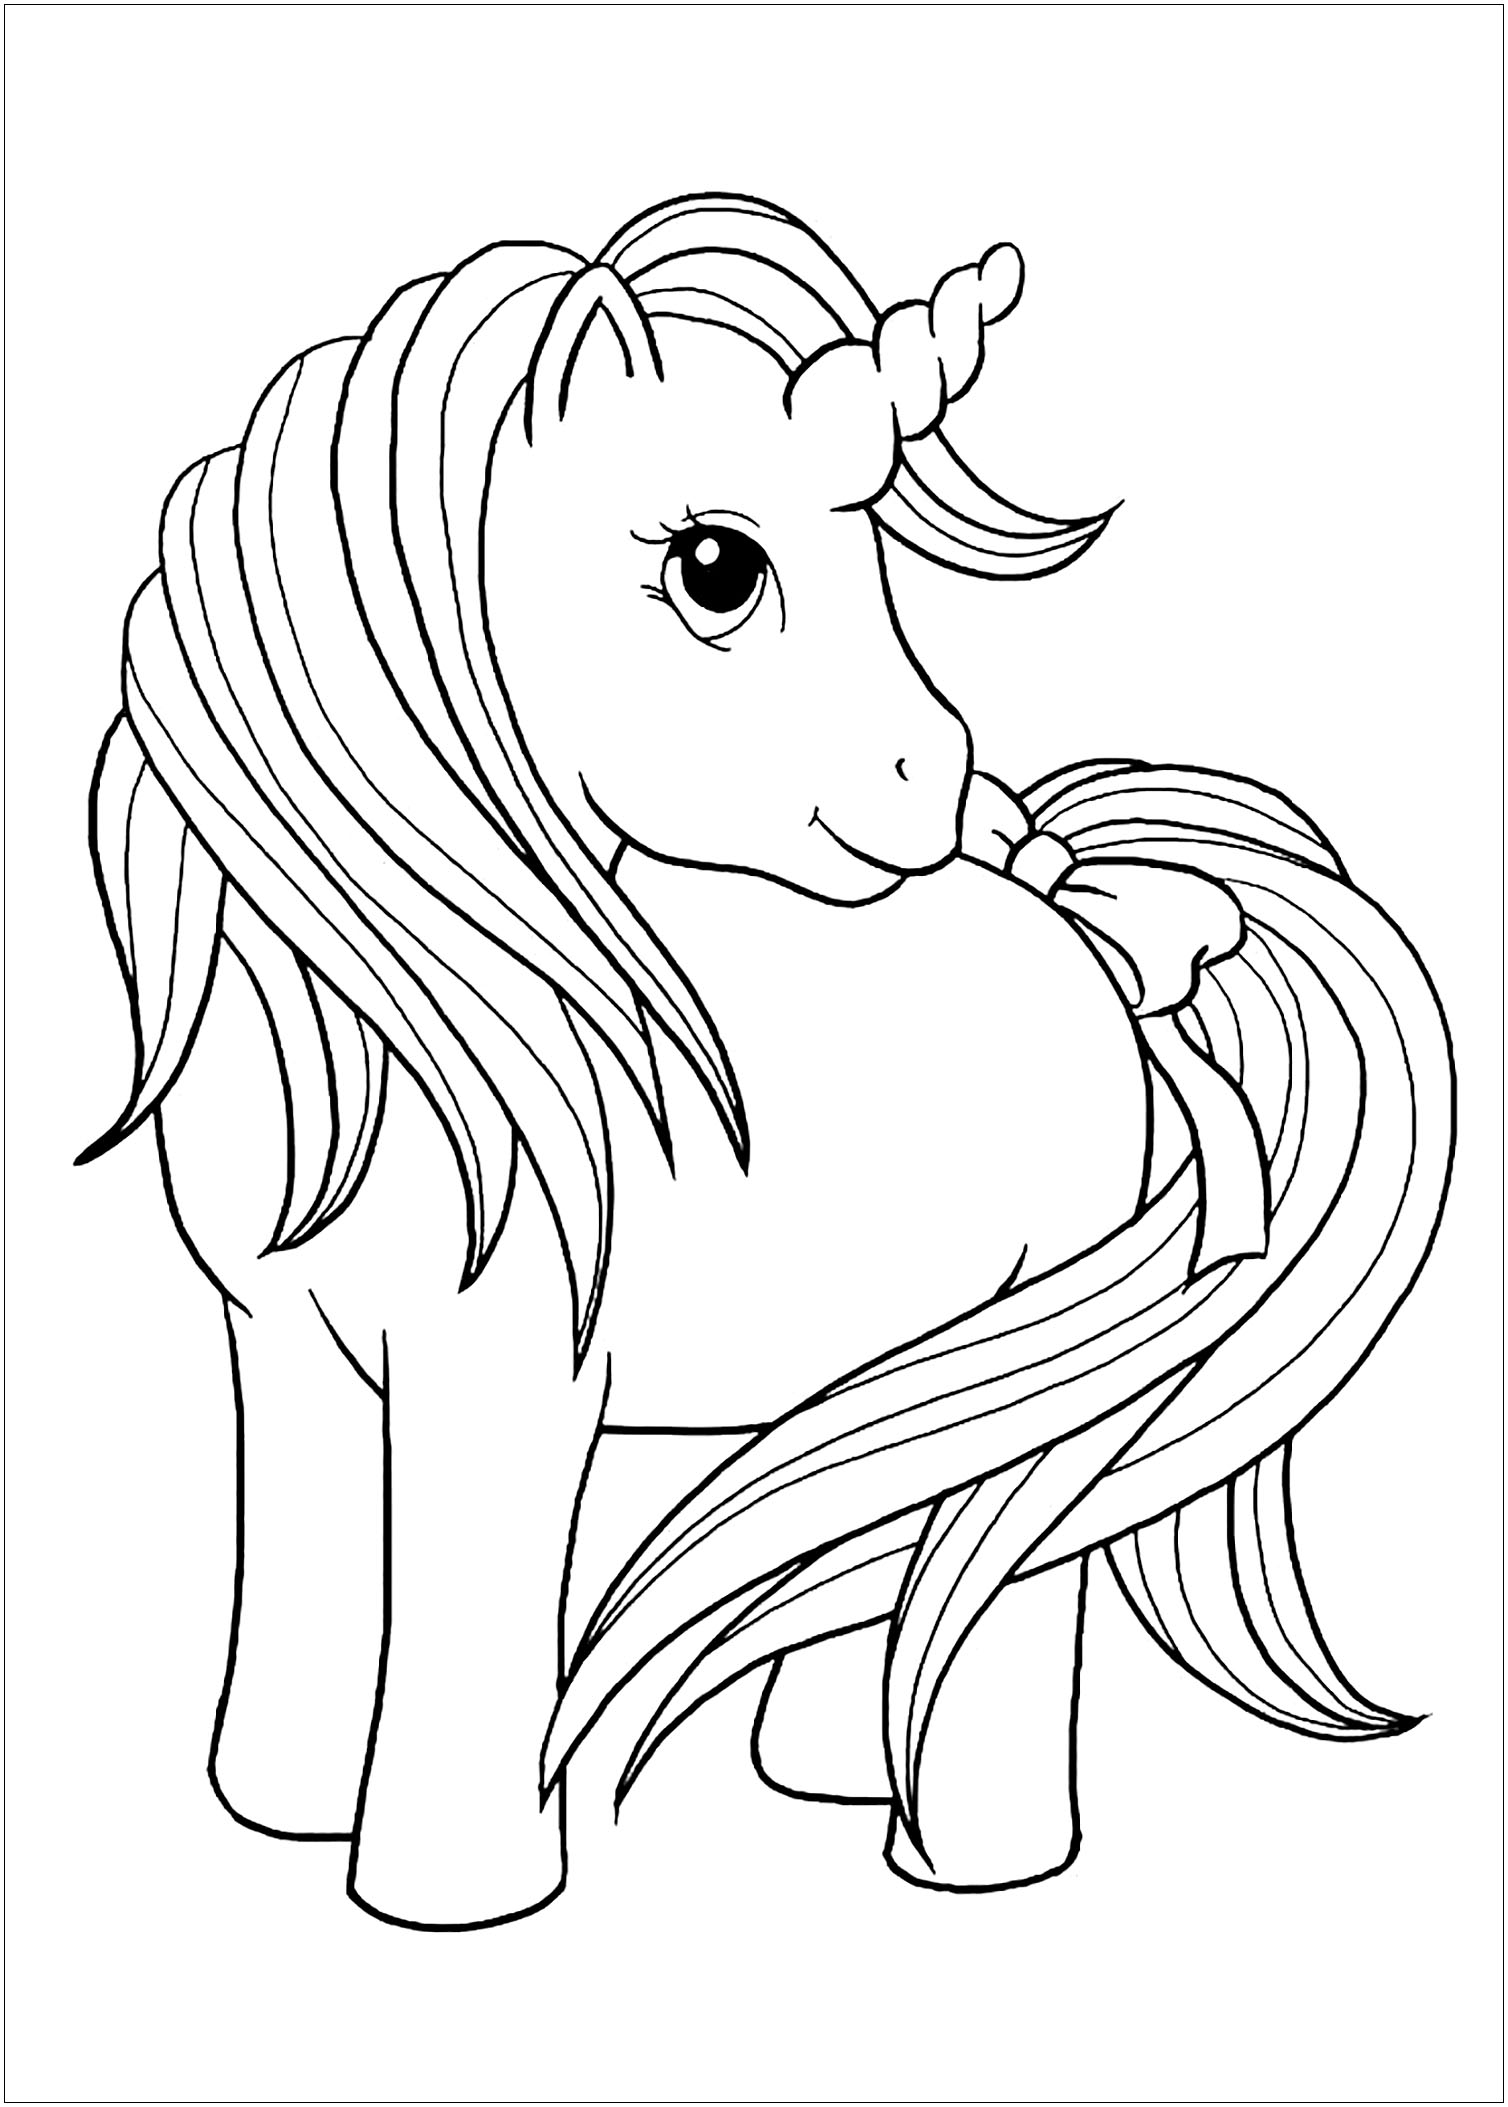 Unicorns Free To Color For Children